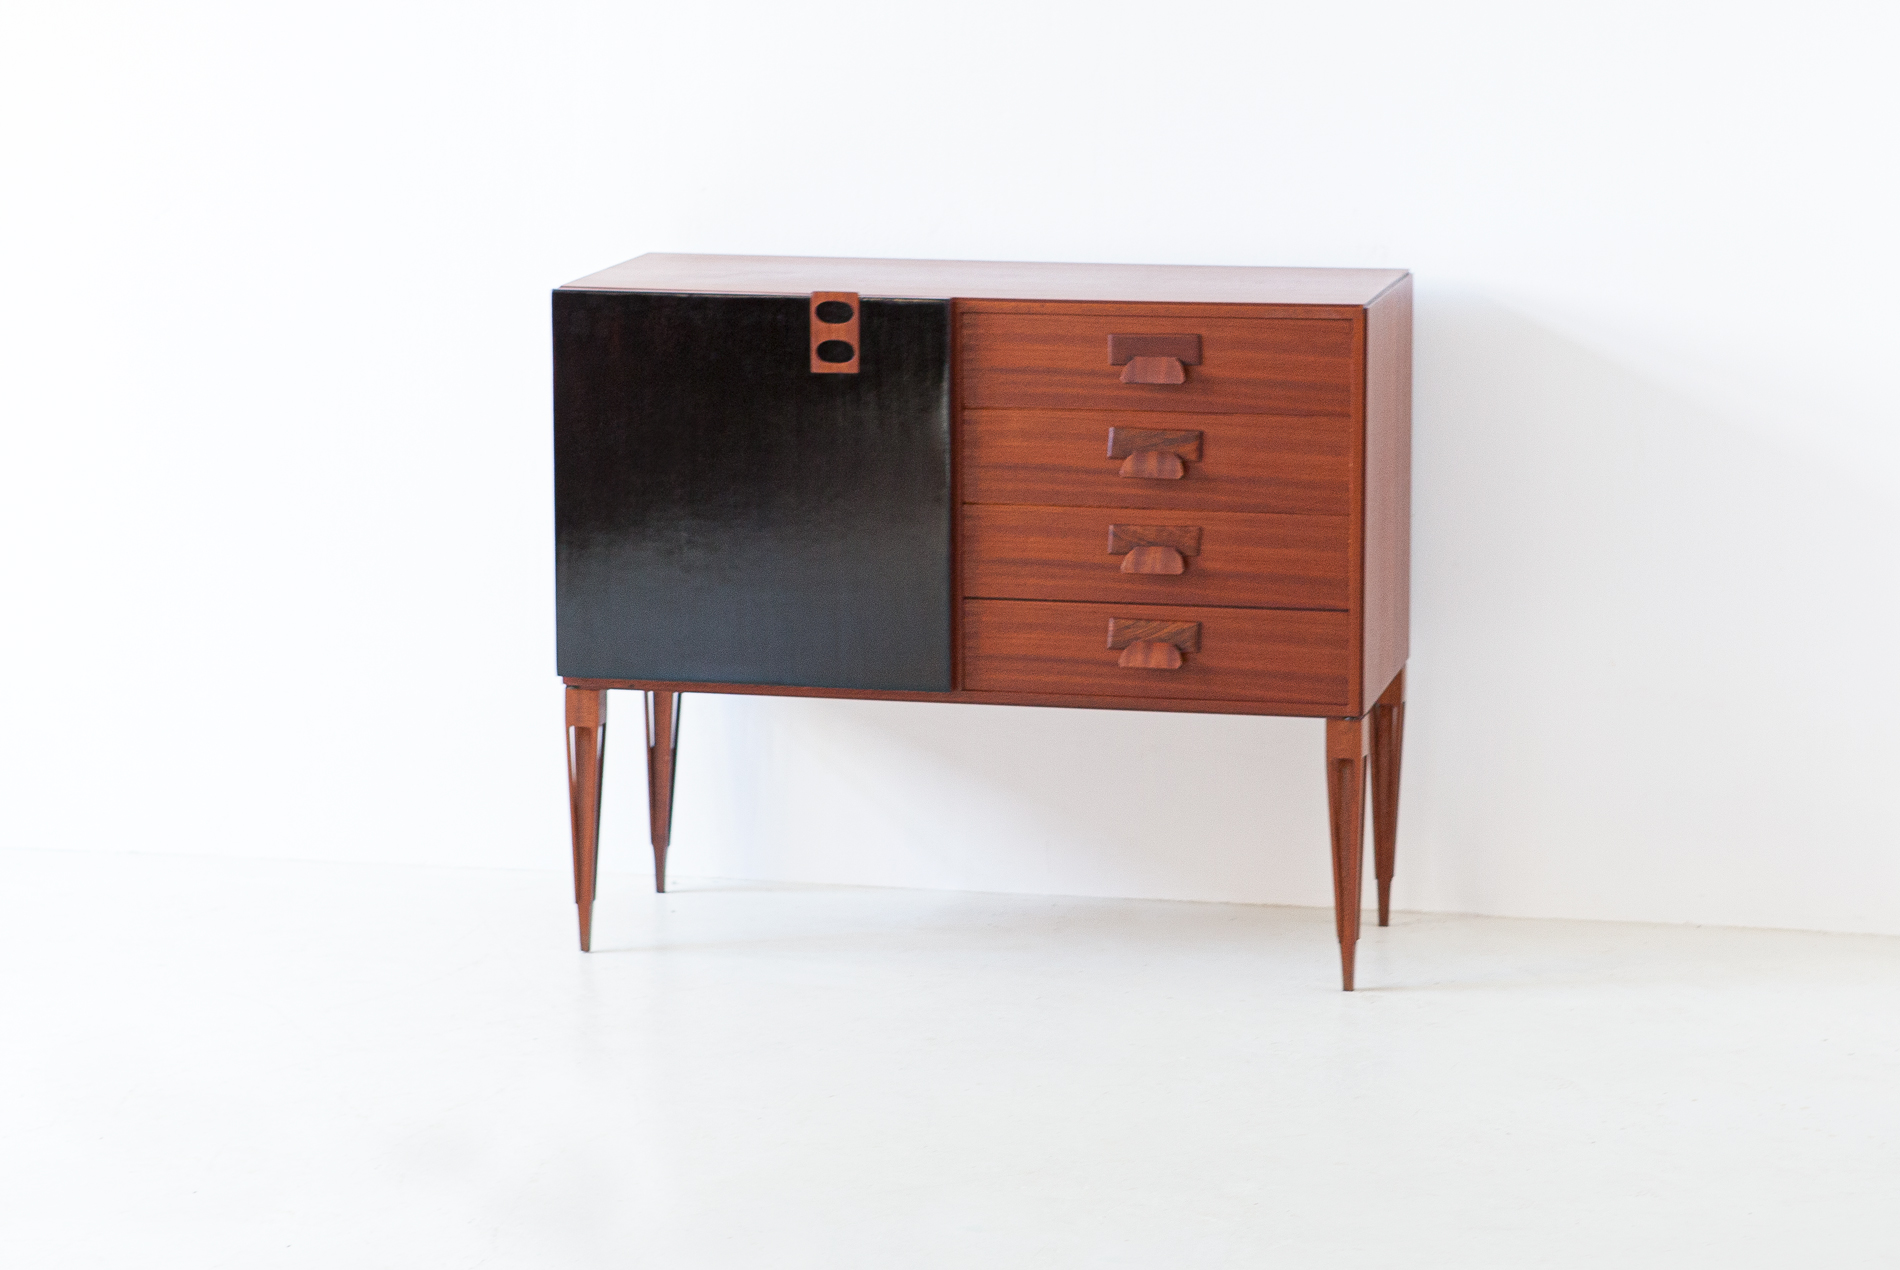 1950s-italian-mahogany-sideboard-with-drawers-by-fratelli-proserpio-6-st121